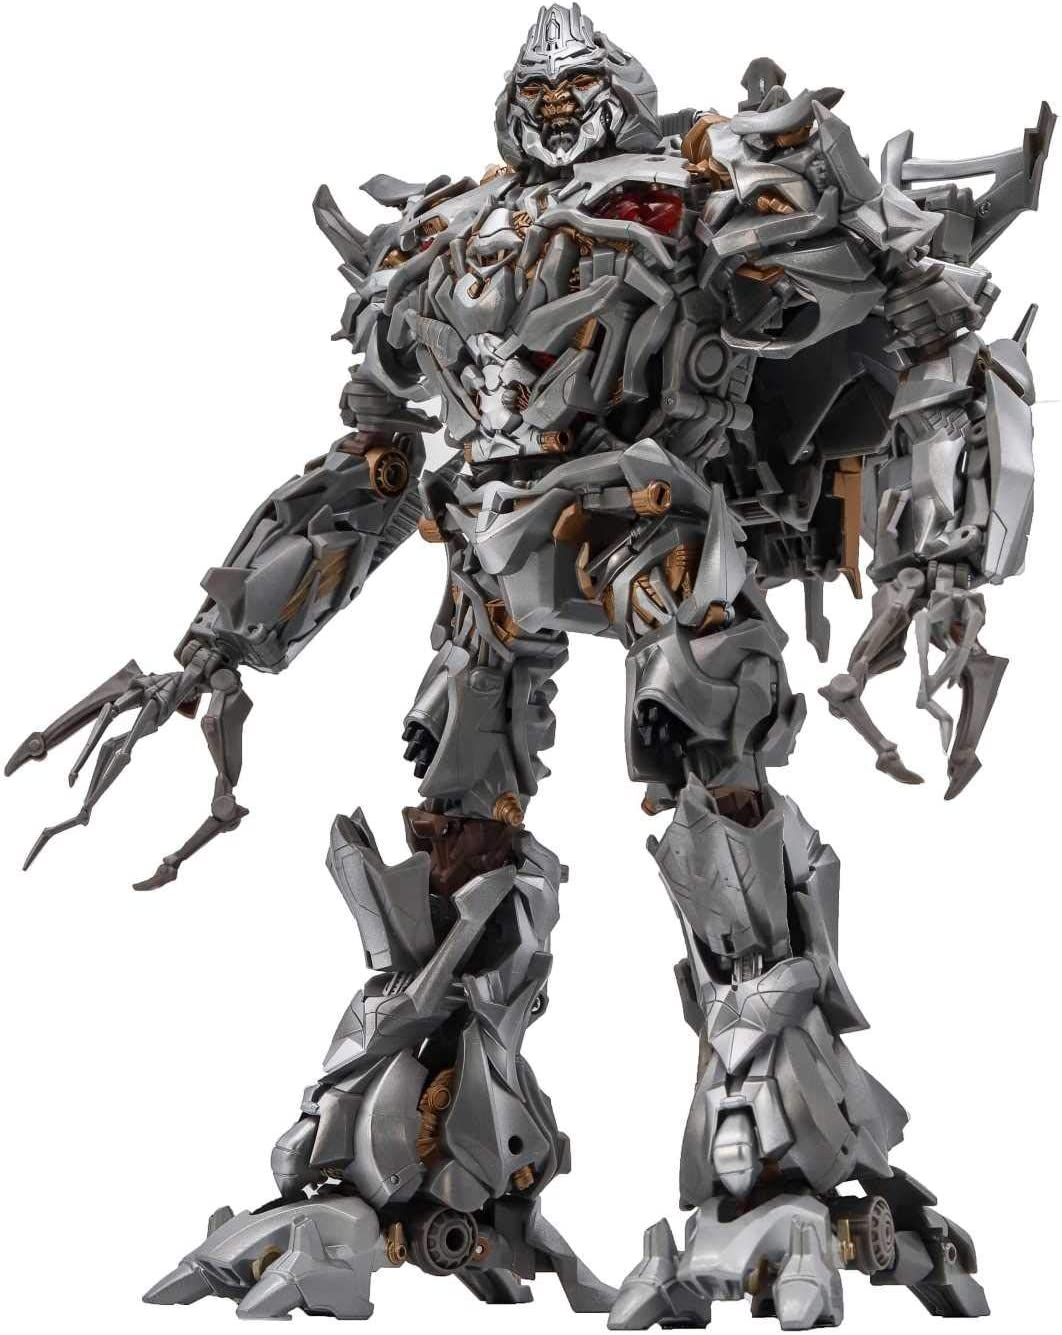 Transformers Masterpiece Movie Series MPM-8 Megatron Action Figure New In-Hand